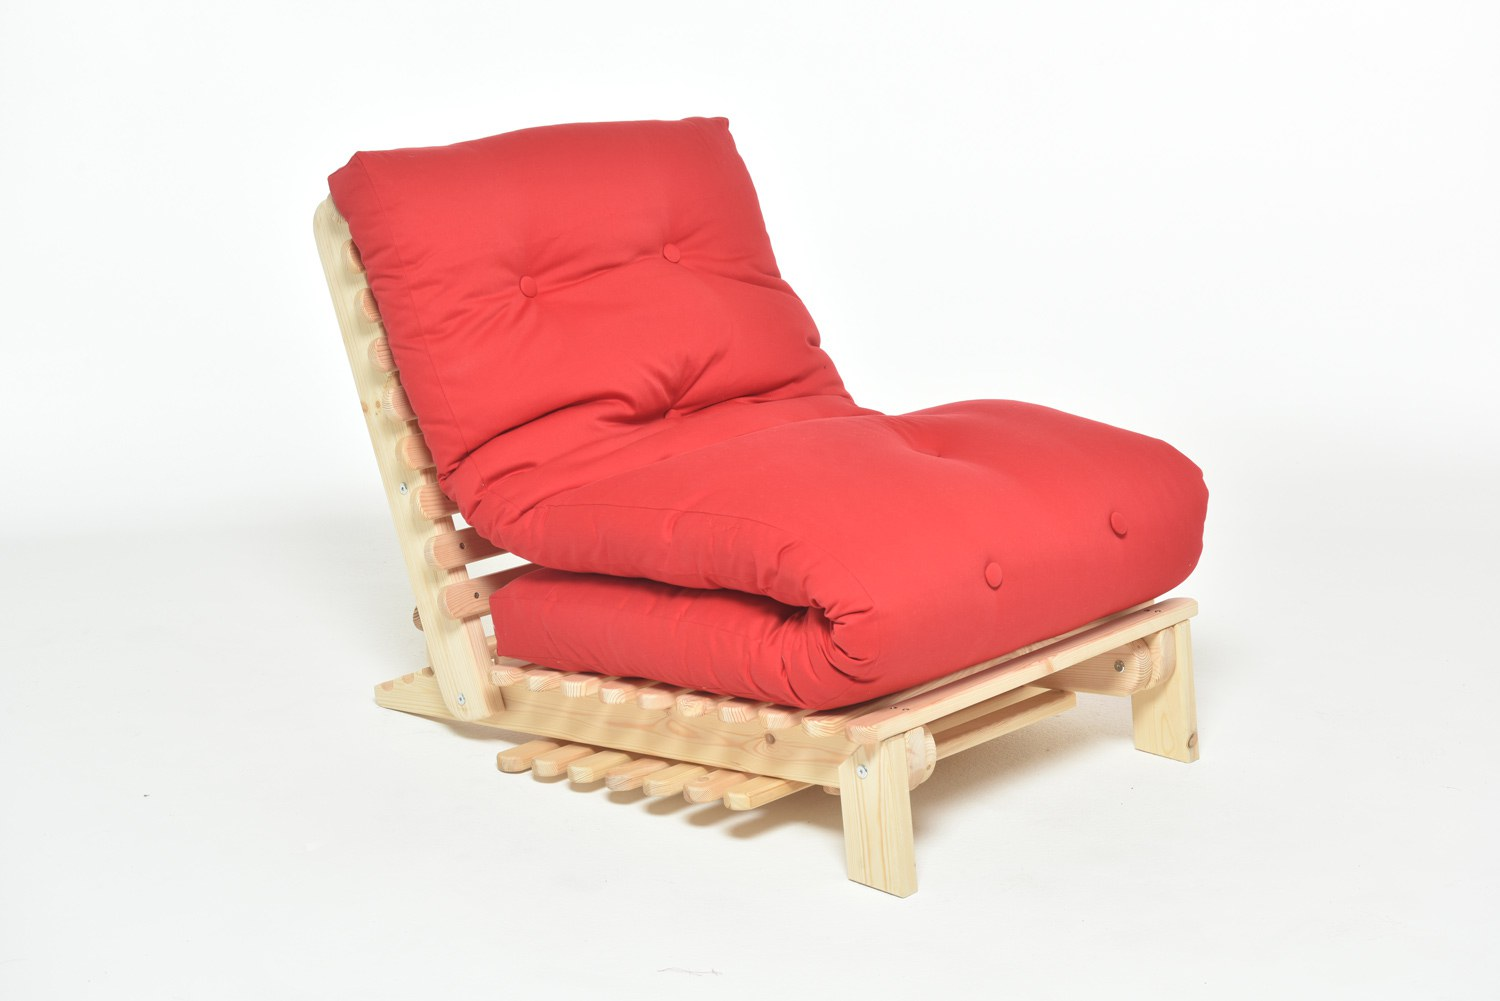 single pine futon sofa bed with mattress fabric for sofas and chairs beds collection the classic